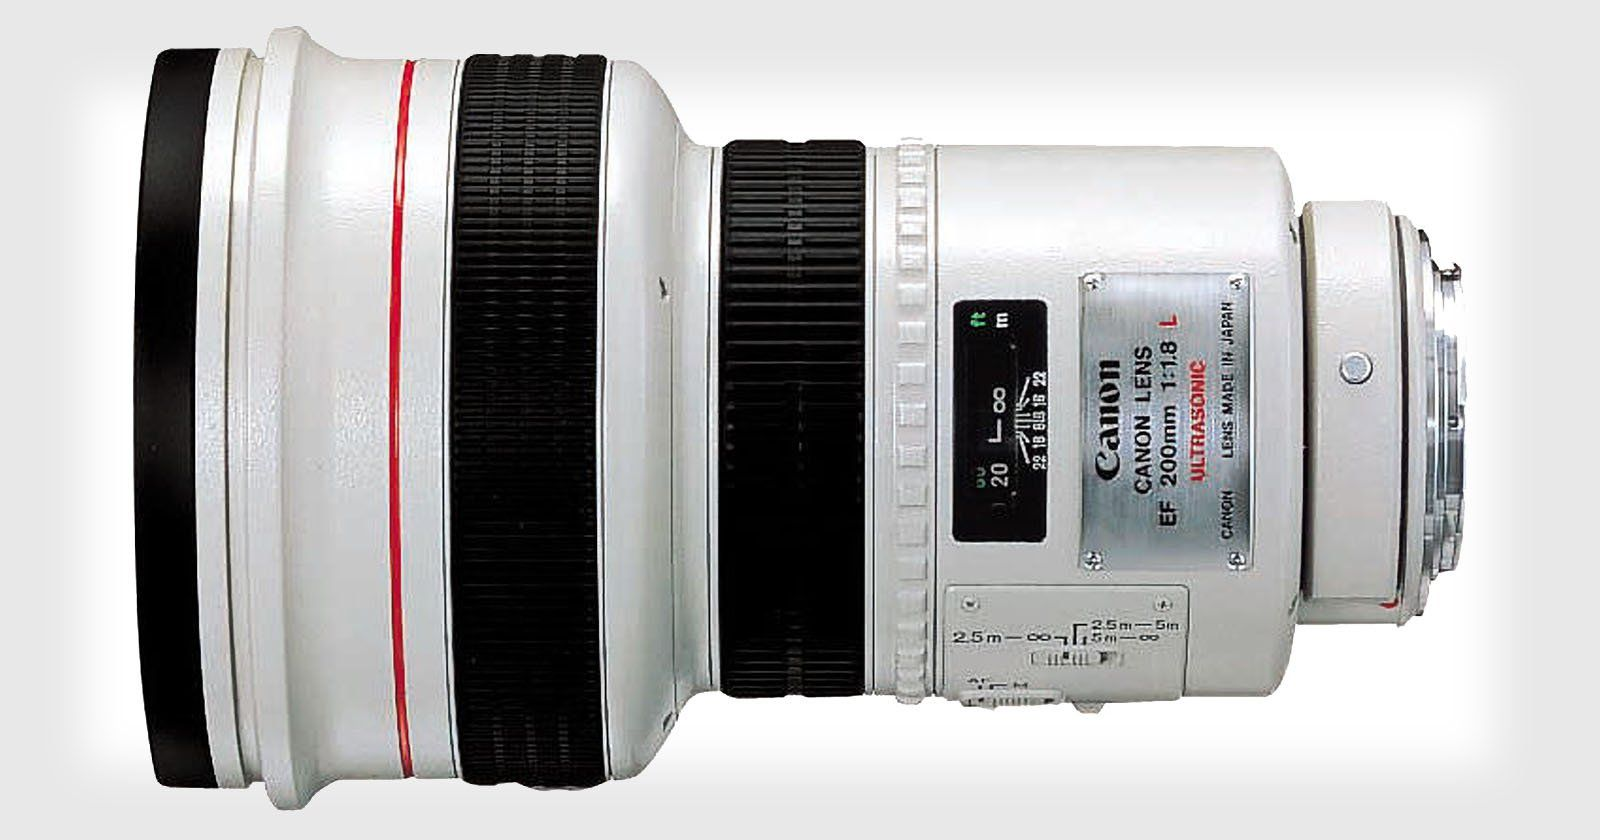 Canon 200mm F 1 8 A Legendary Lens Known As The Eye Of Sauron Digital Camera Photography Camera Photography Photography Equiptment